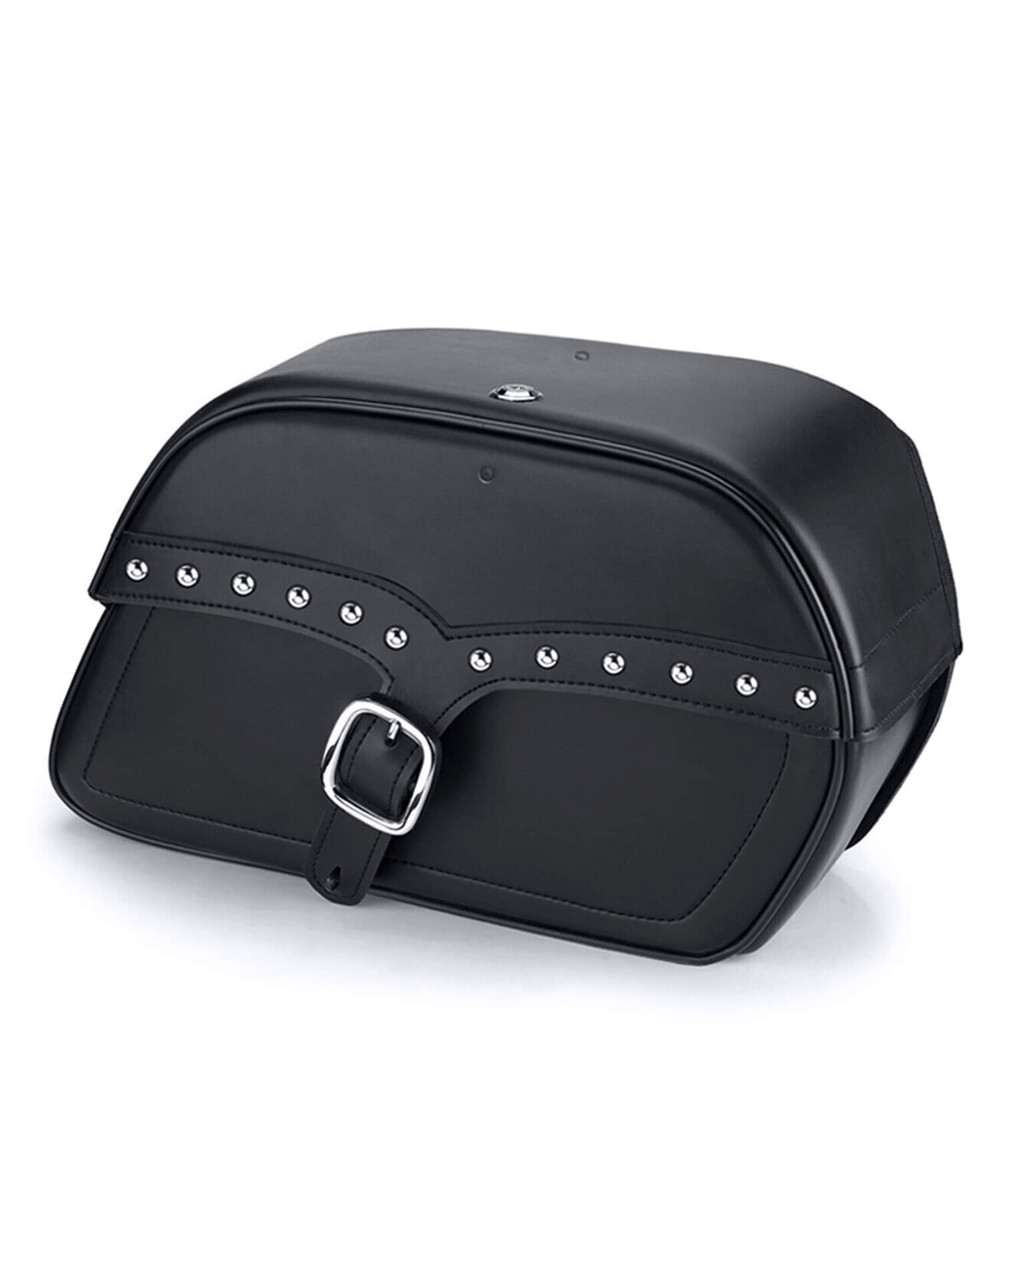 Triumph Thunderbird Charger Single Strap Studded Large Motorcycle Saddlebags Main Bag View